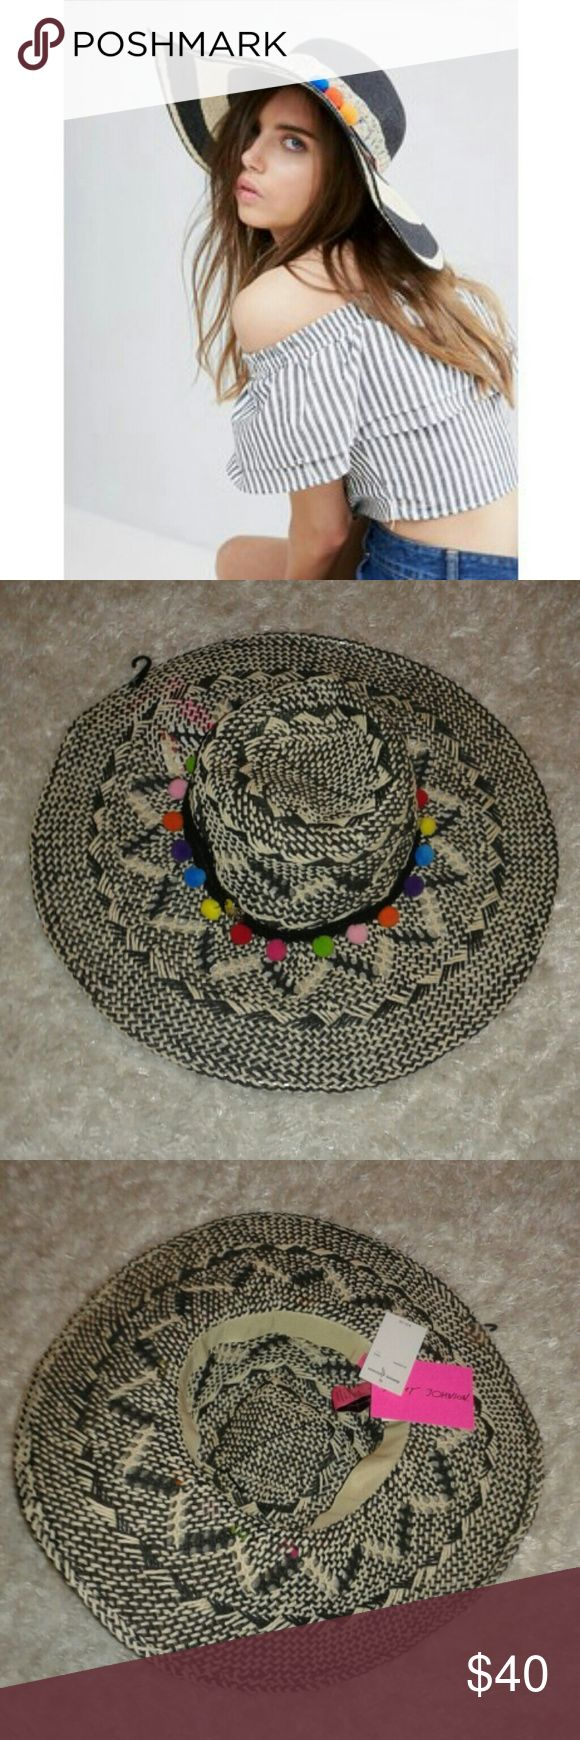 Betsey Johnson floppy straw hat with pompoms NWT. Black and cream straw raffia hat with multicolored poms. No flaws. Never worn...a bit different print on hat, but same floppy style. Betsey Johnson Accessories Hats